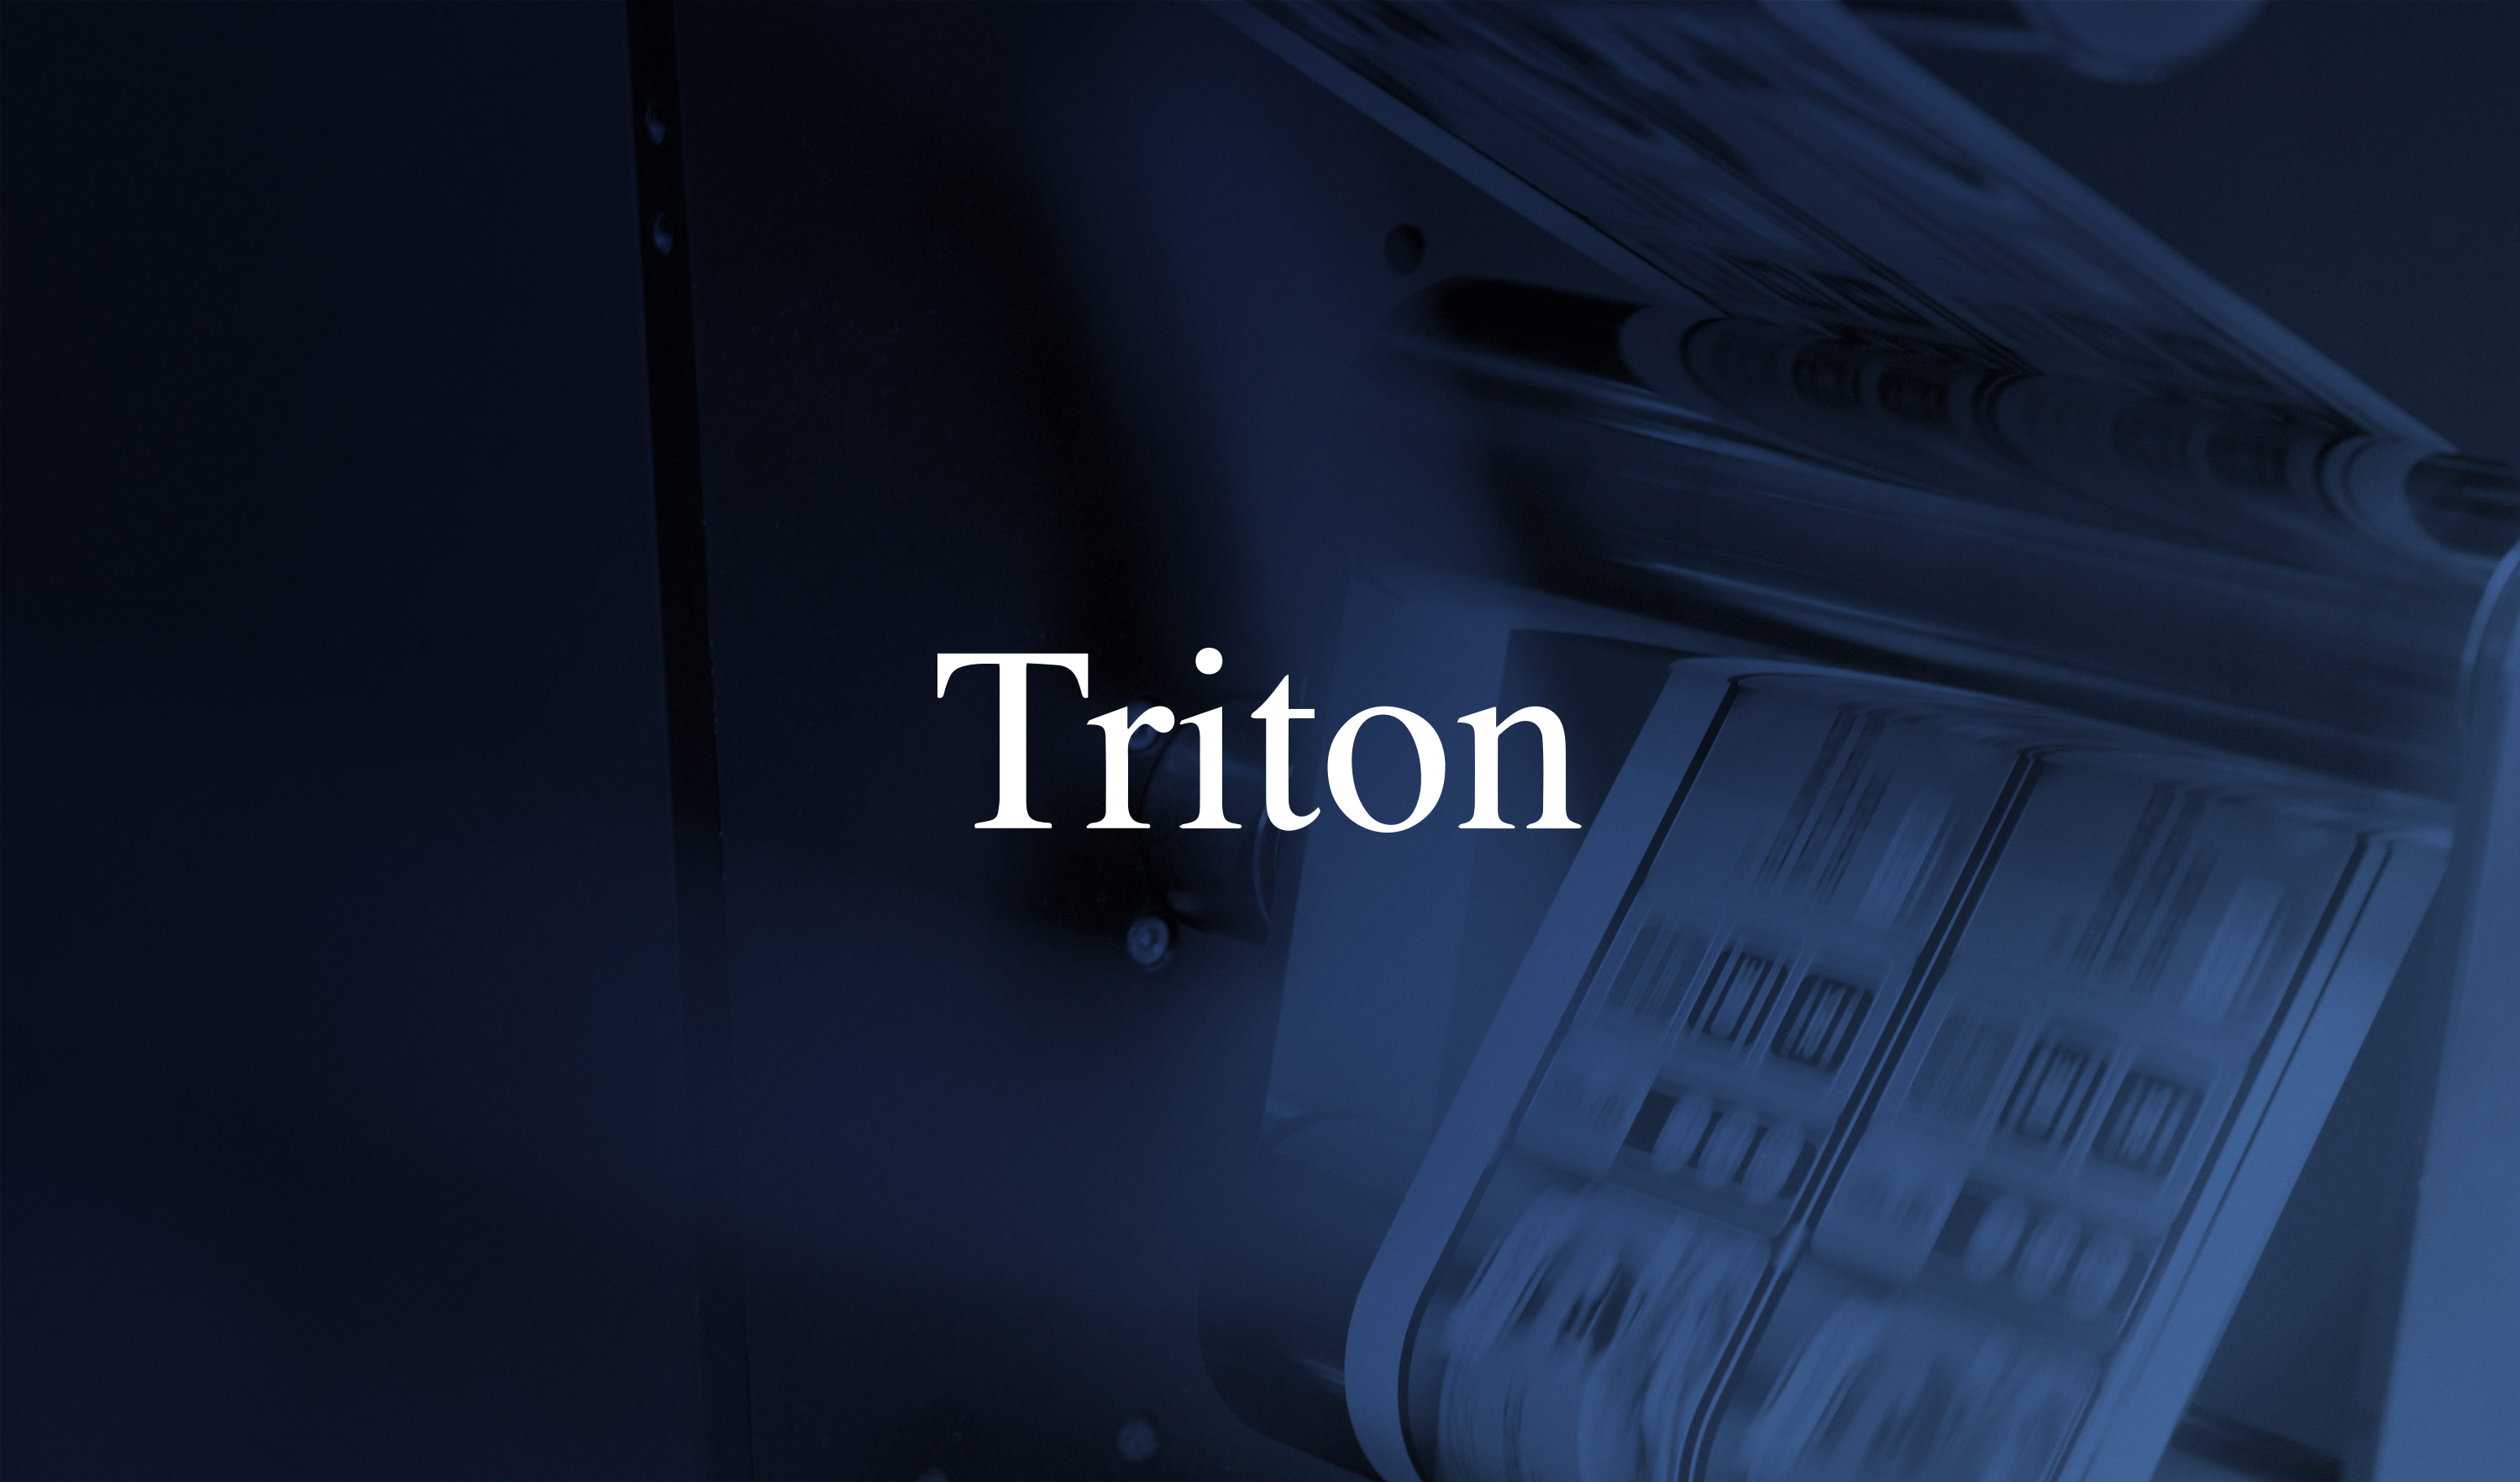 Triton invests in All4Labels together with current Management